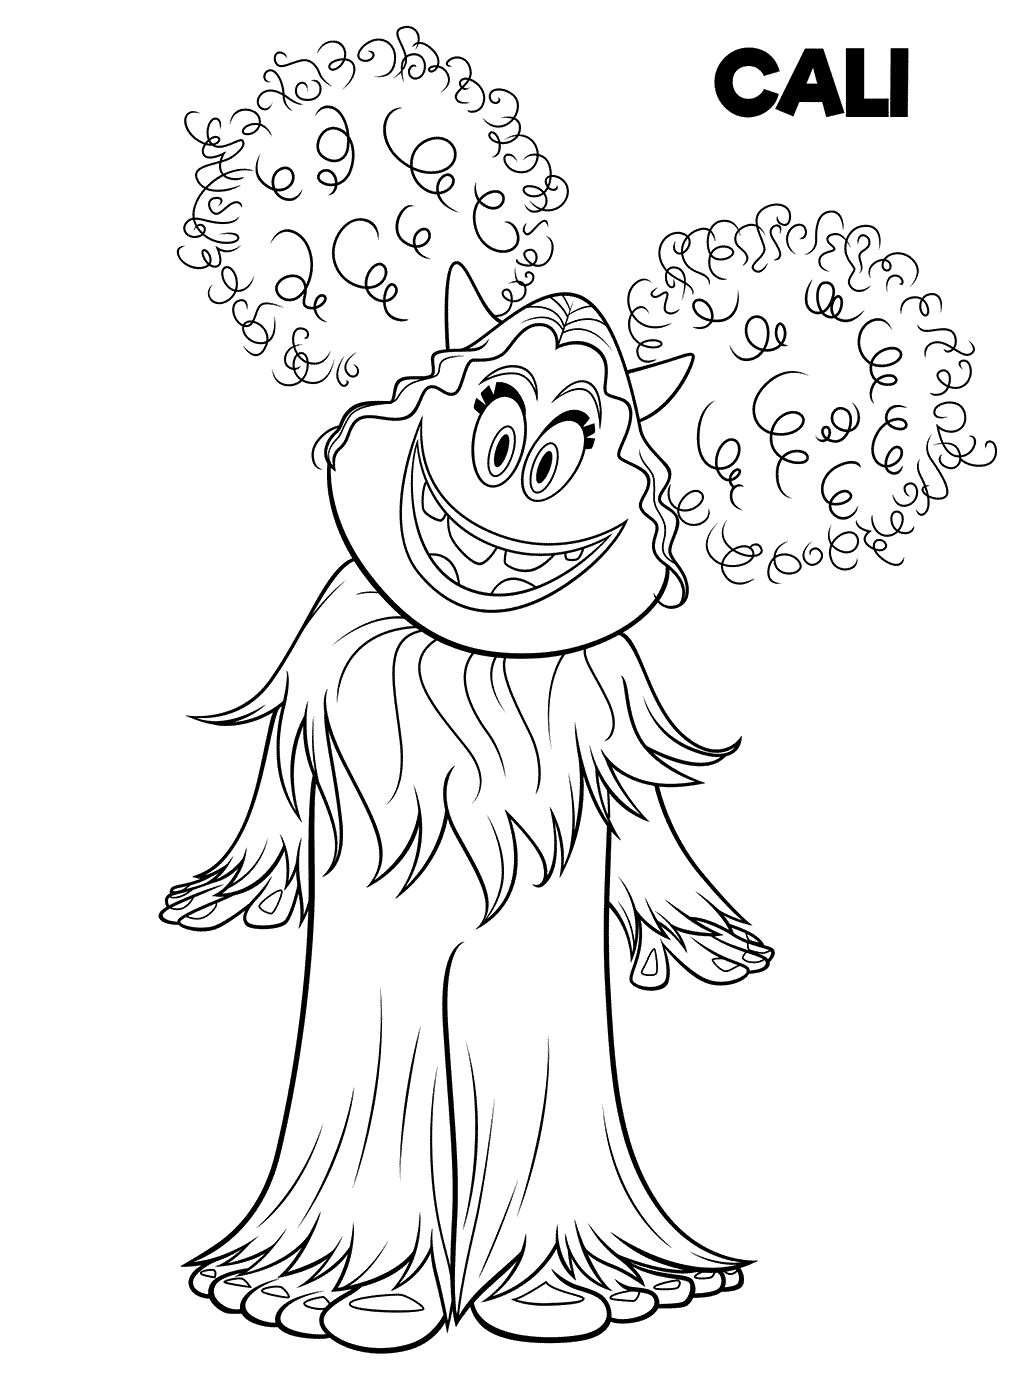 Kids-n-fun.com | 6 coloring pages of Smallfoot